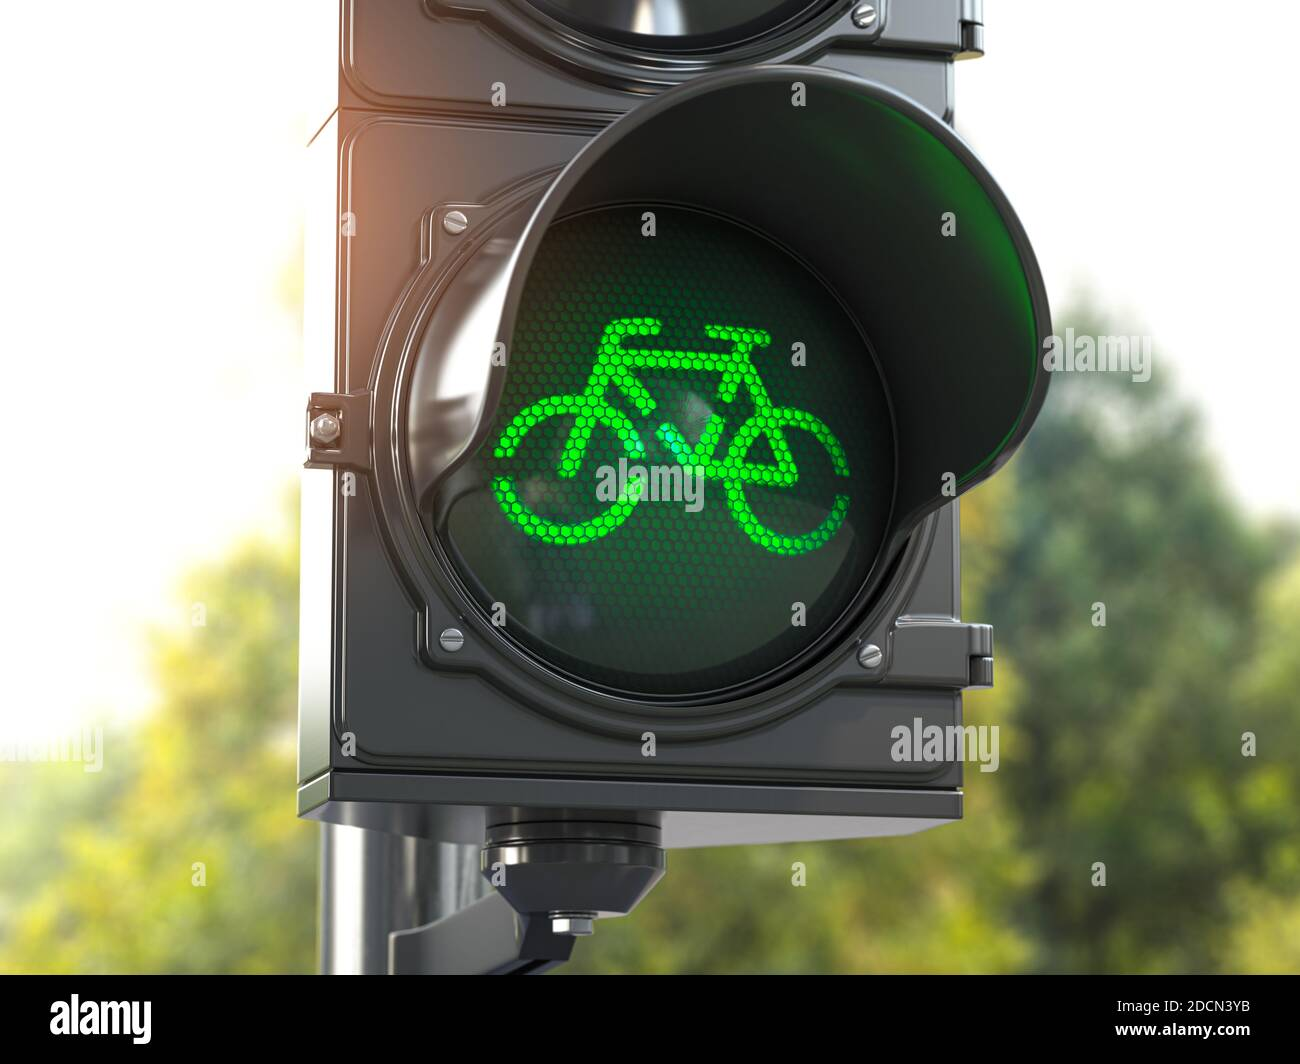 Bicycle Light Illustration High Resolution Stock Photography And Images Alamy Traffic light bicycle night glow neon